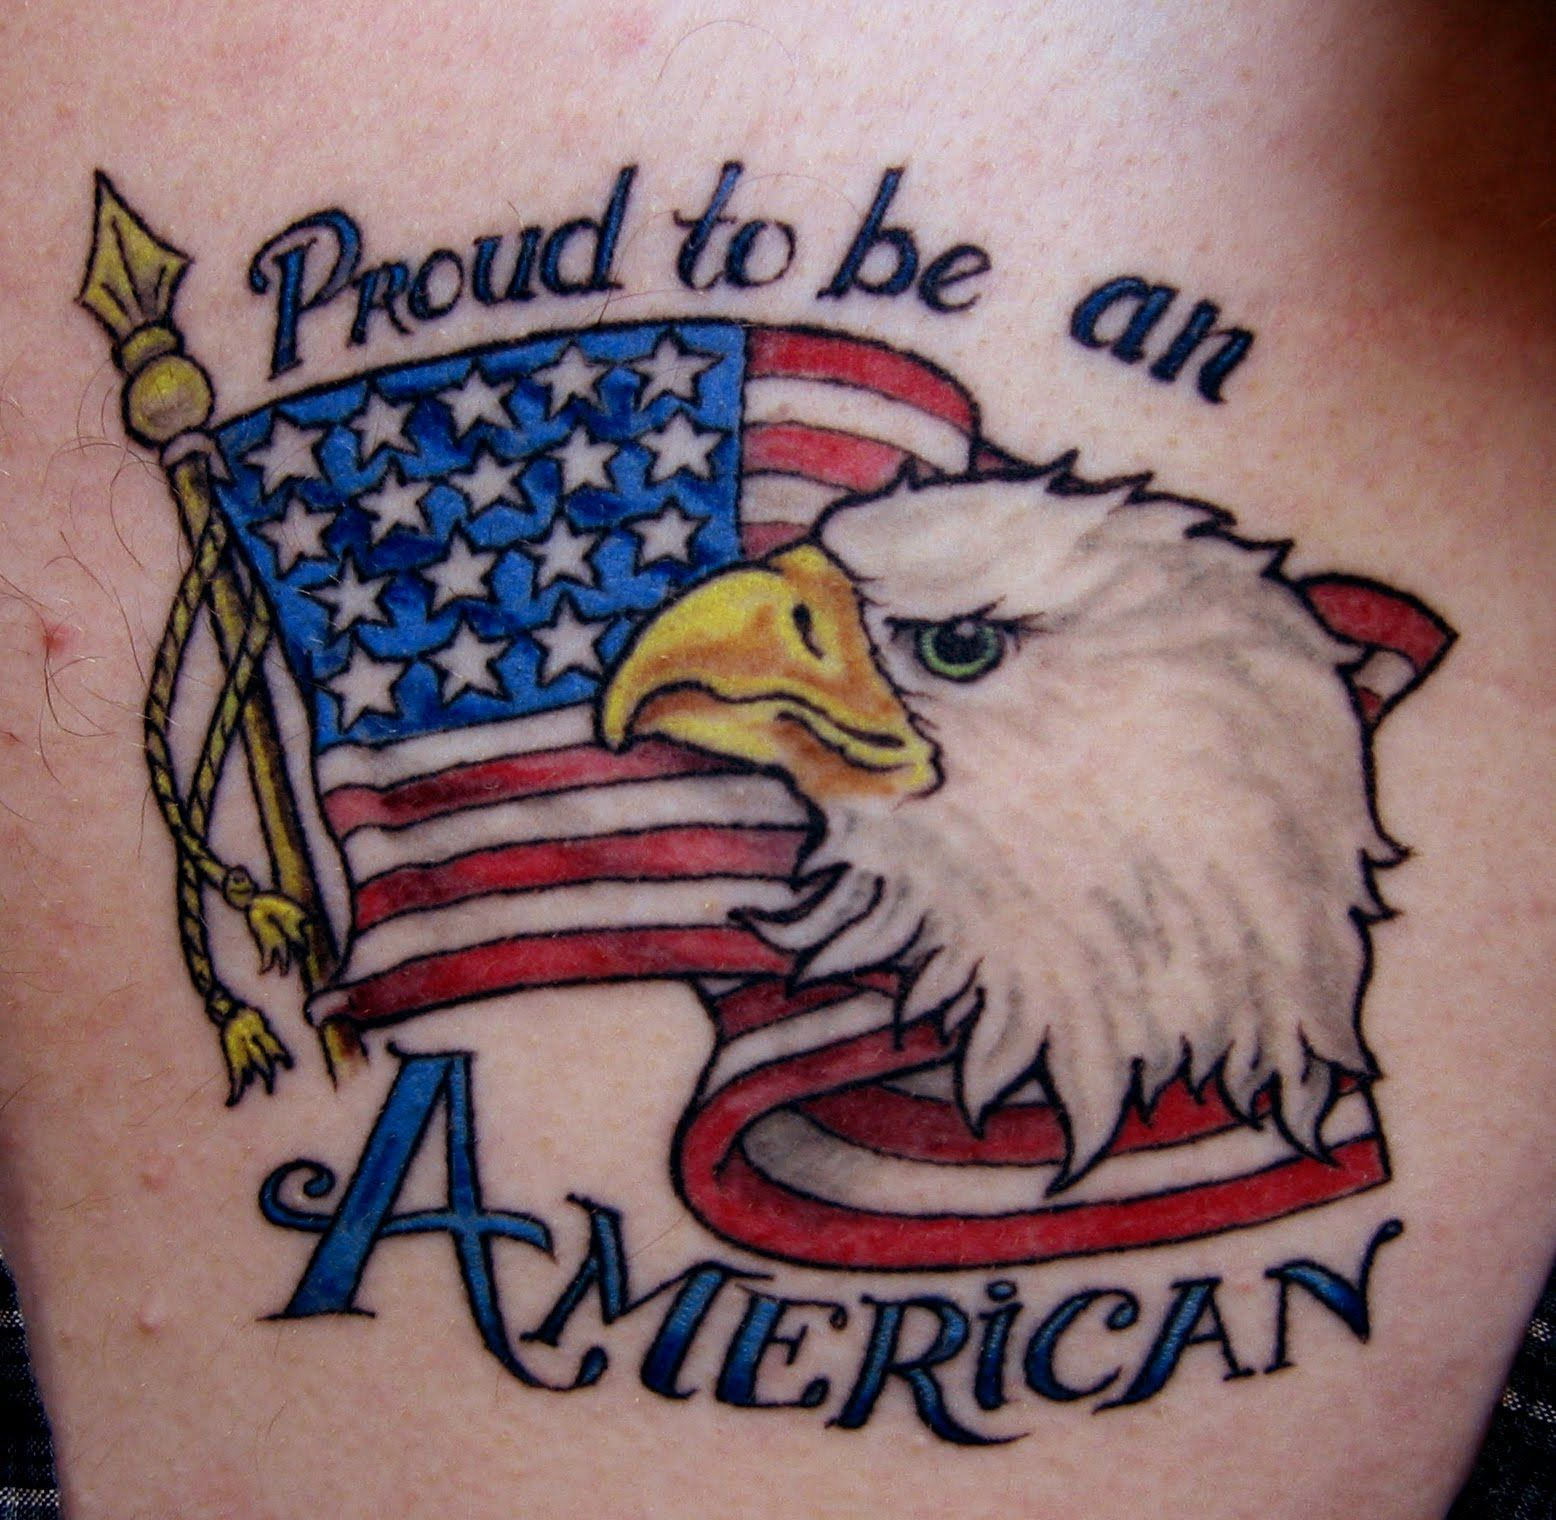 American eagle tattoos high quality photos and flash - American Flag With Eagle Tattoos Foxfire Side Chat These Colors Don T Run